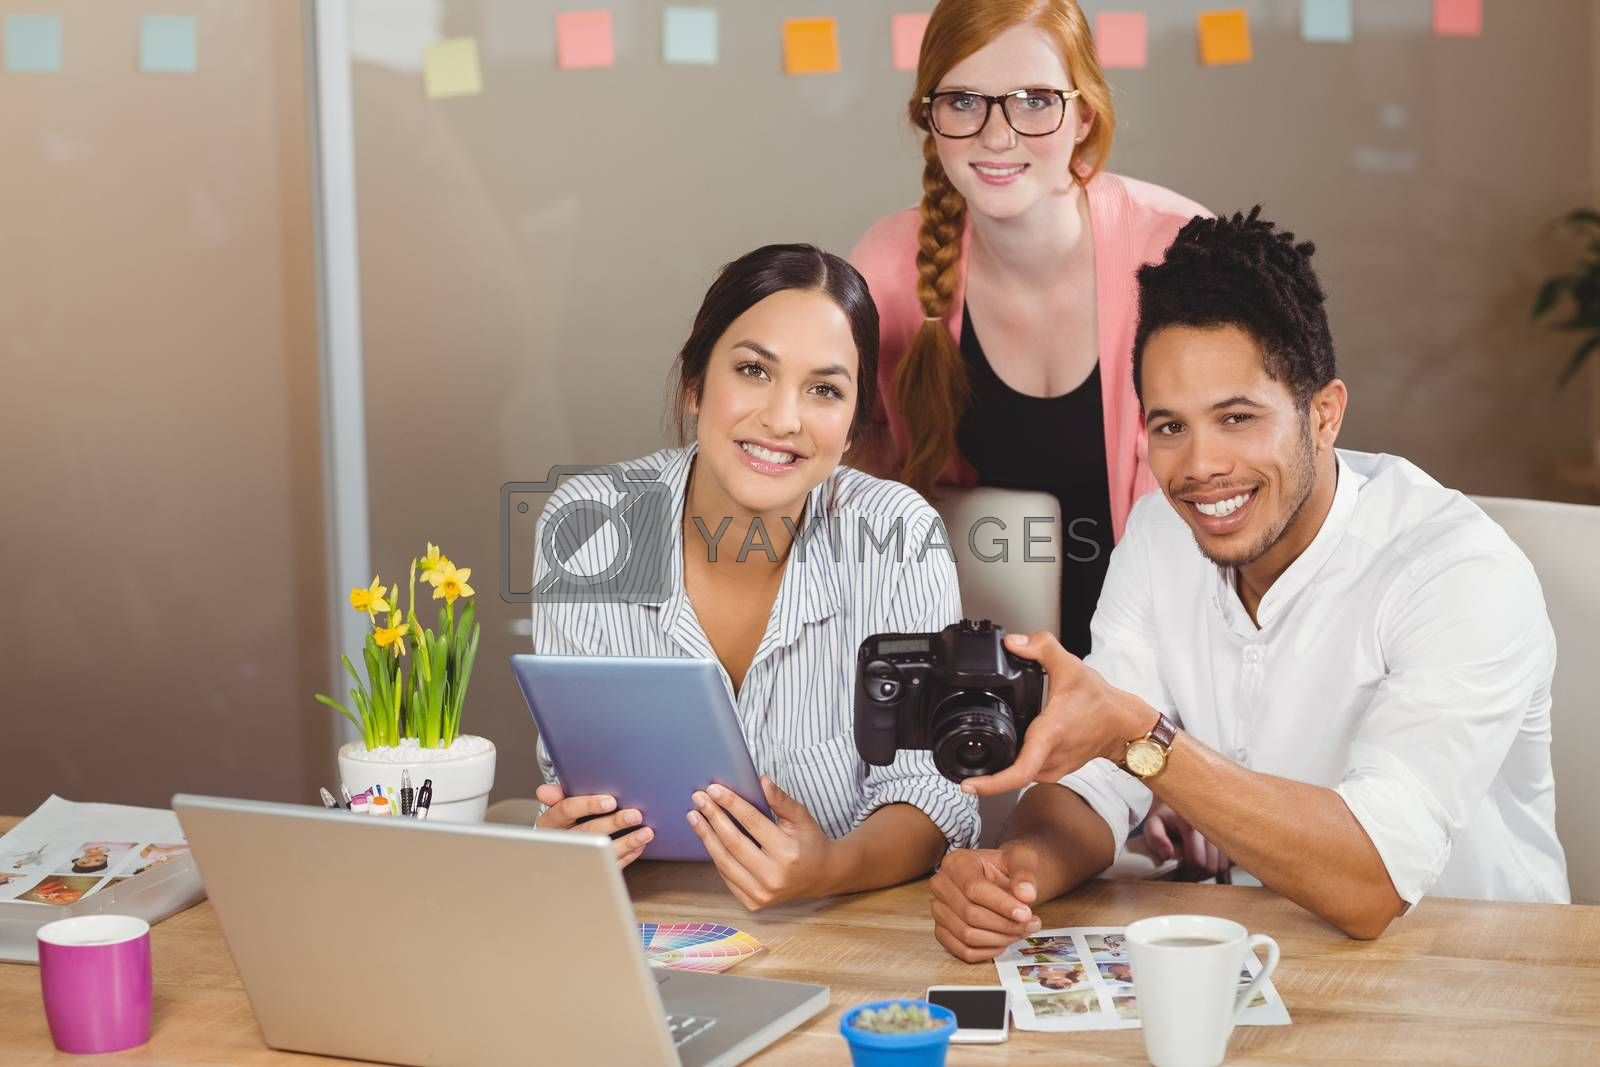 Portrait of happy business people with camera working in creative office